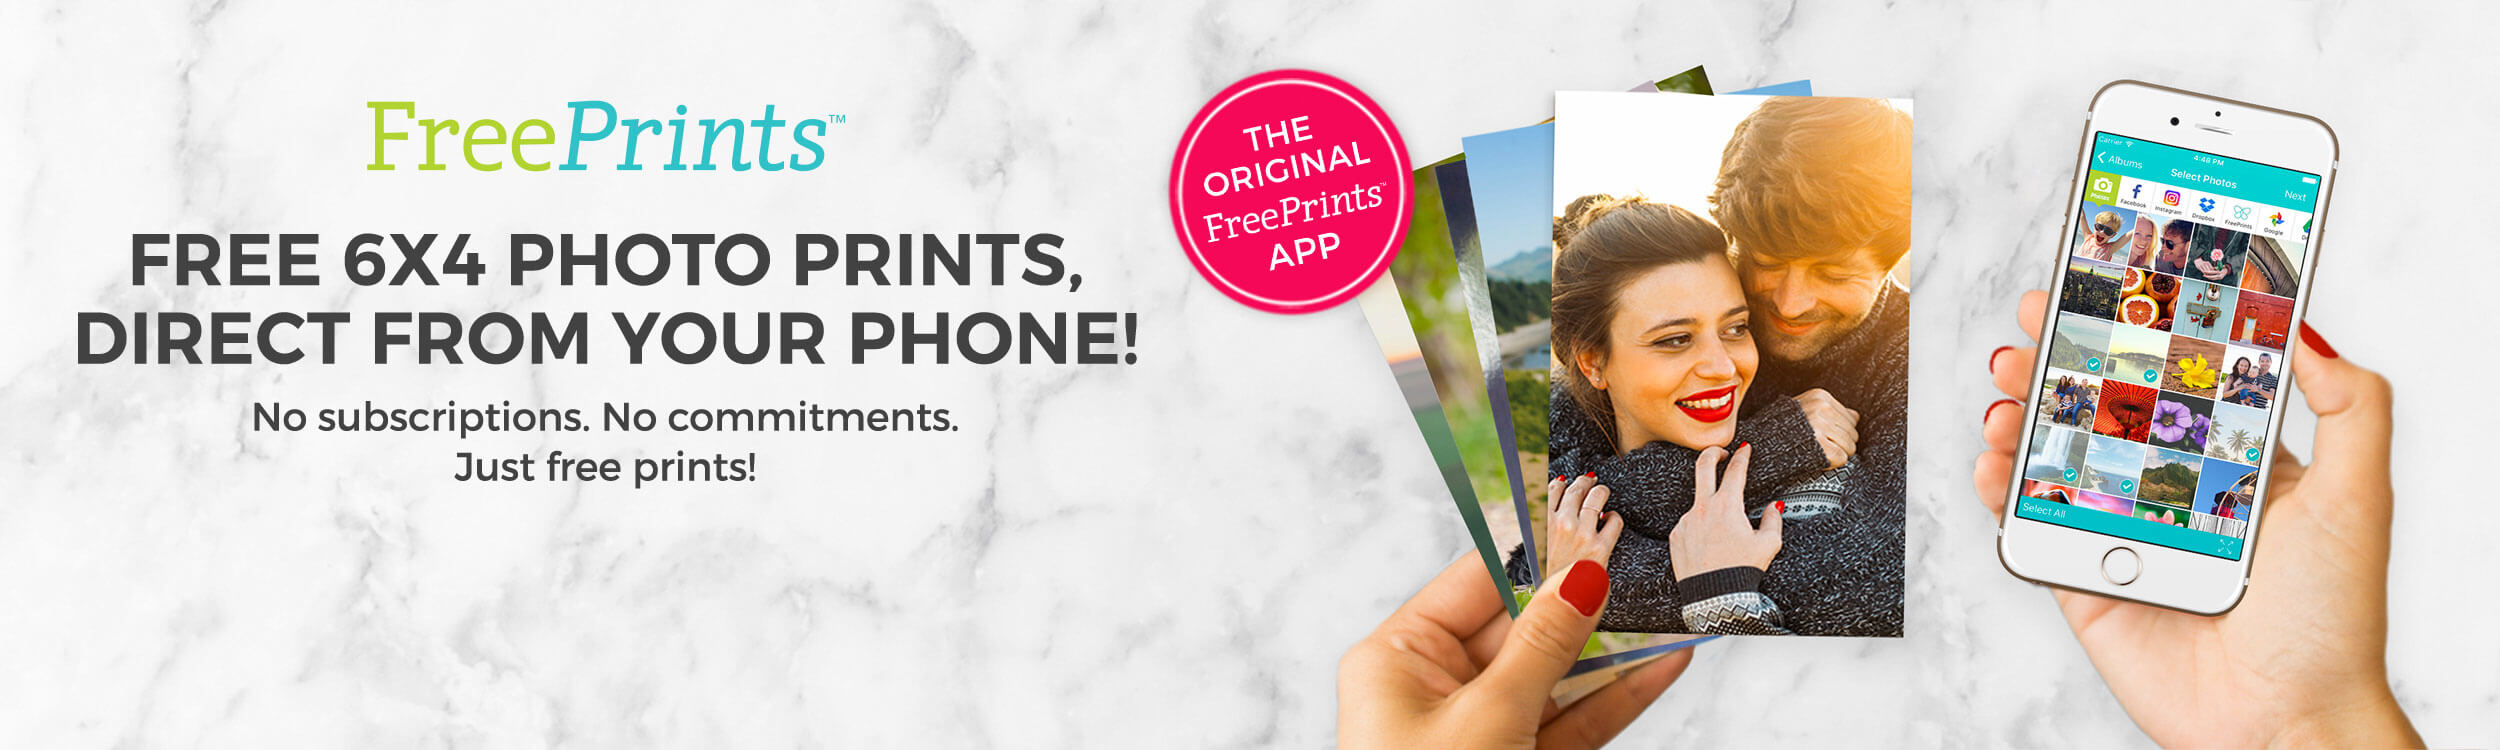 Free 6x4 Photo Prints, Right from your phone!